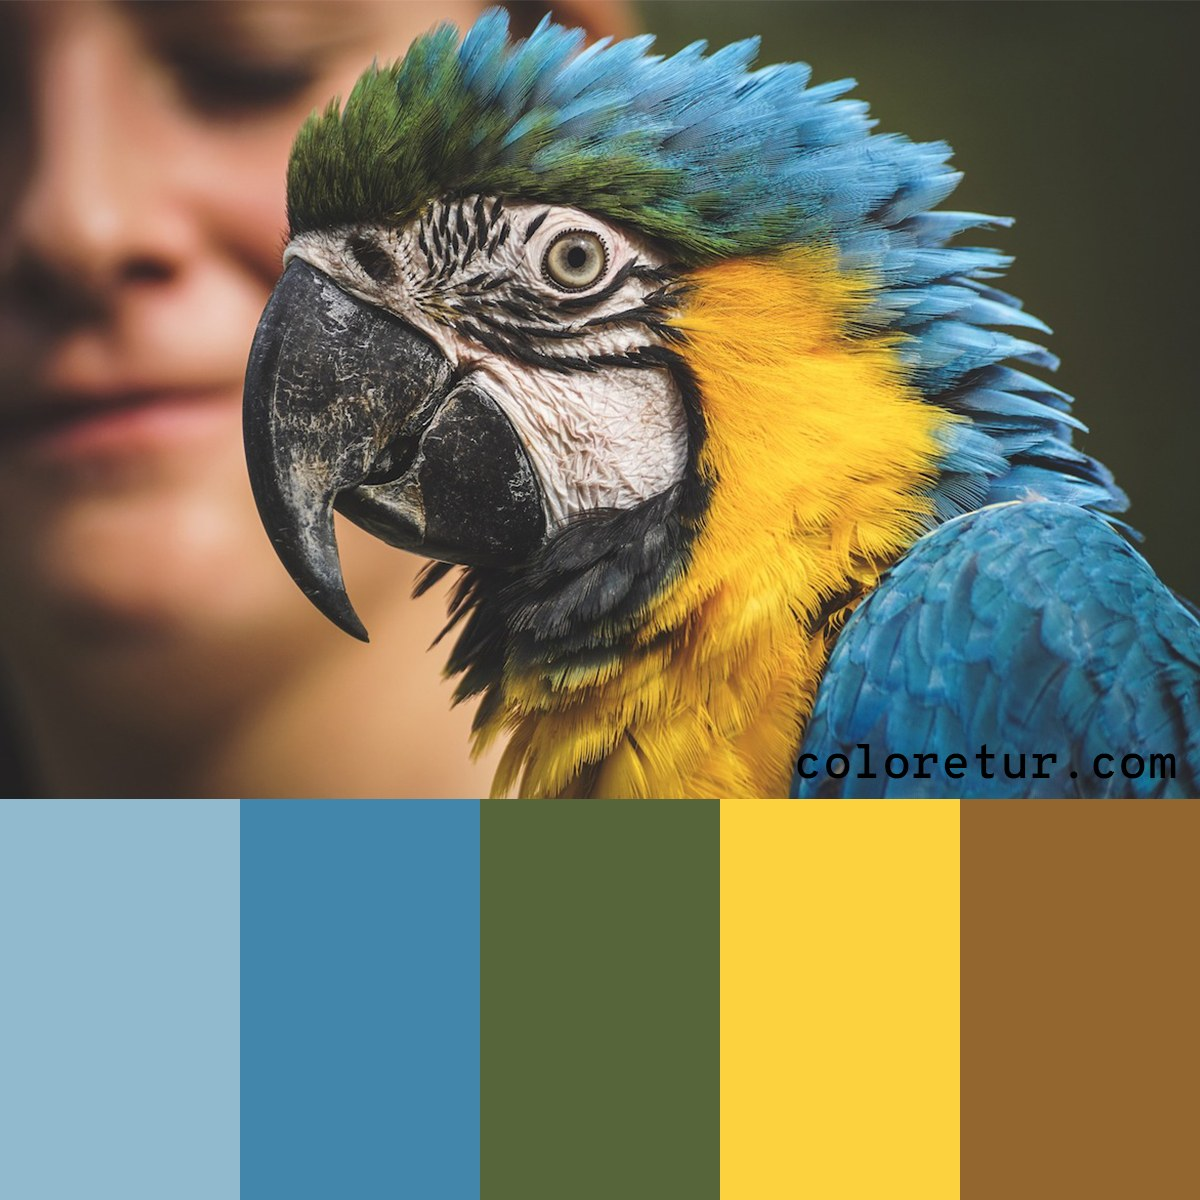 A bright, colorful palette from the feathers of a macaw.